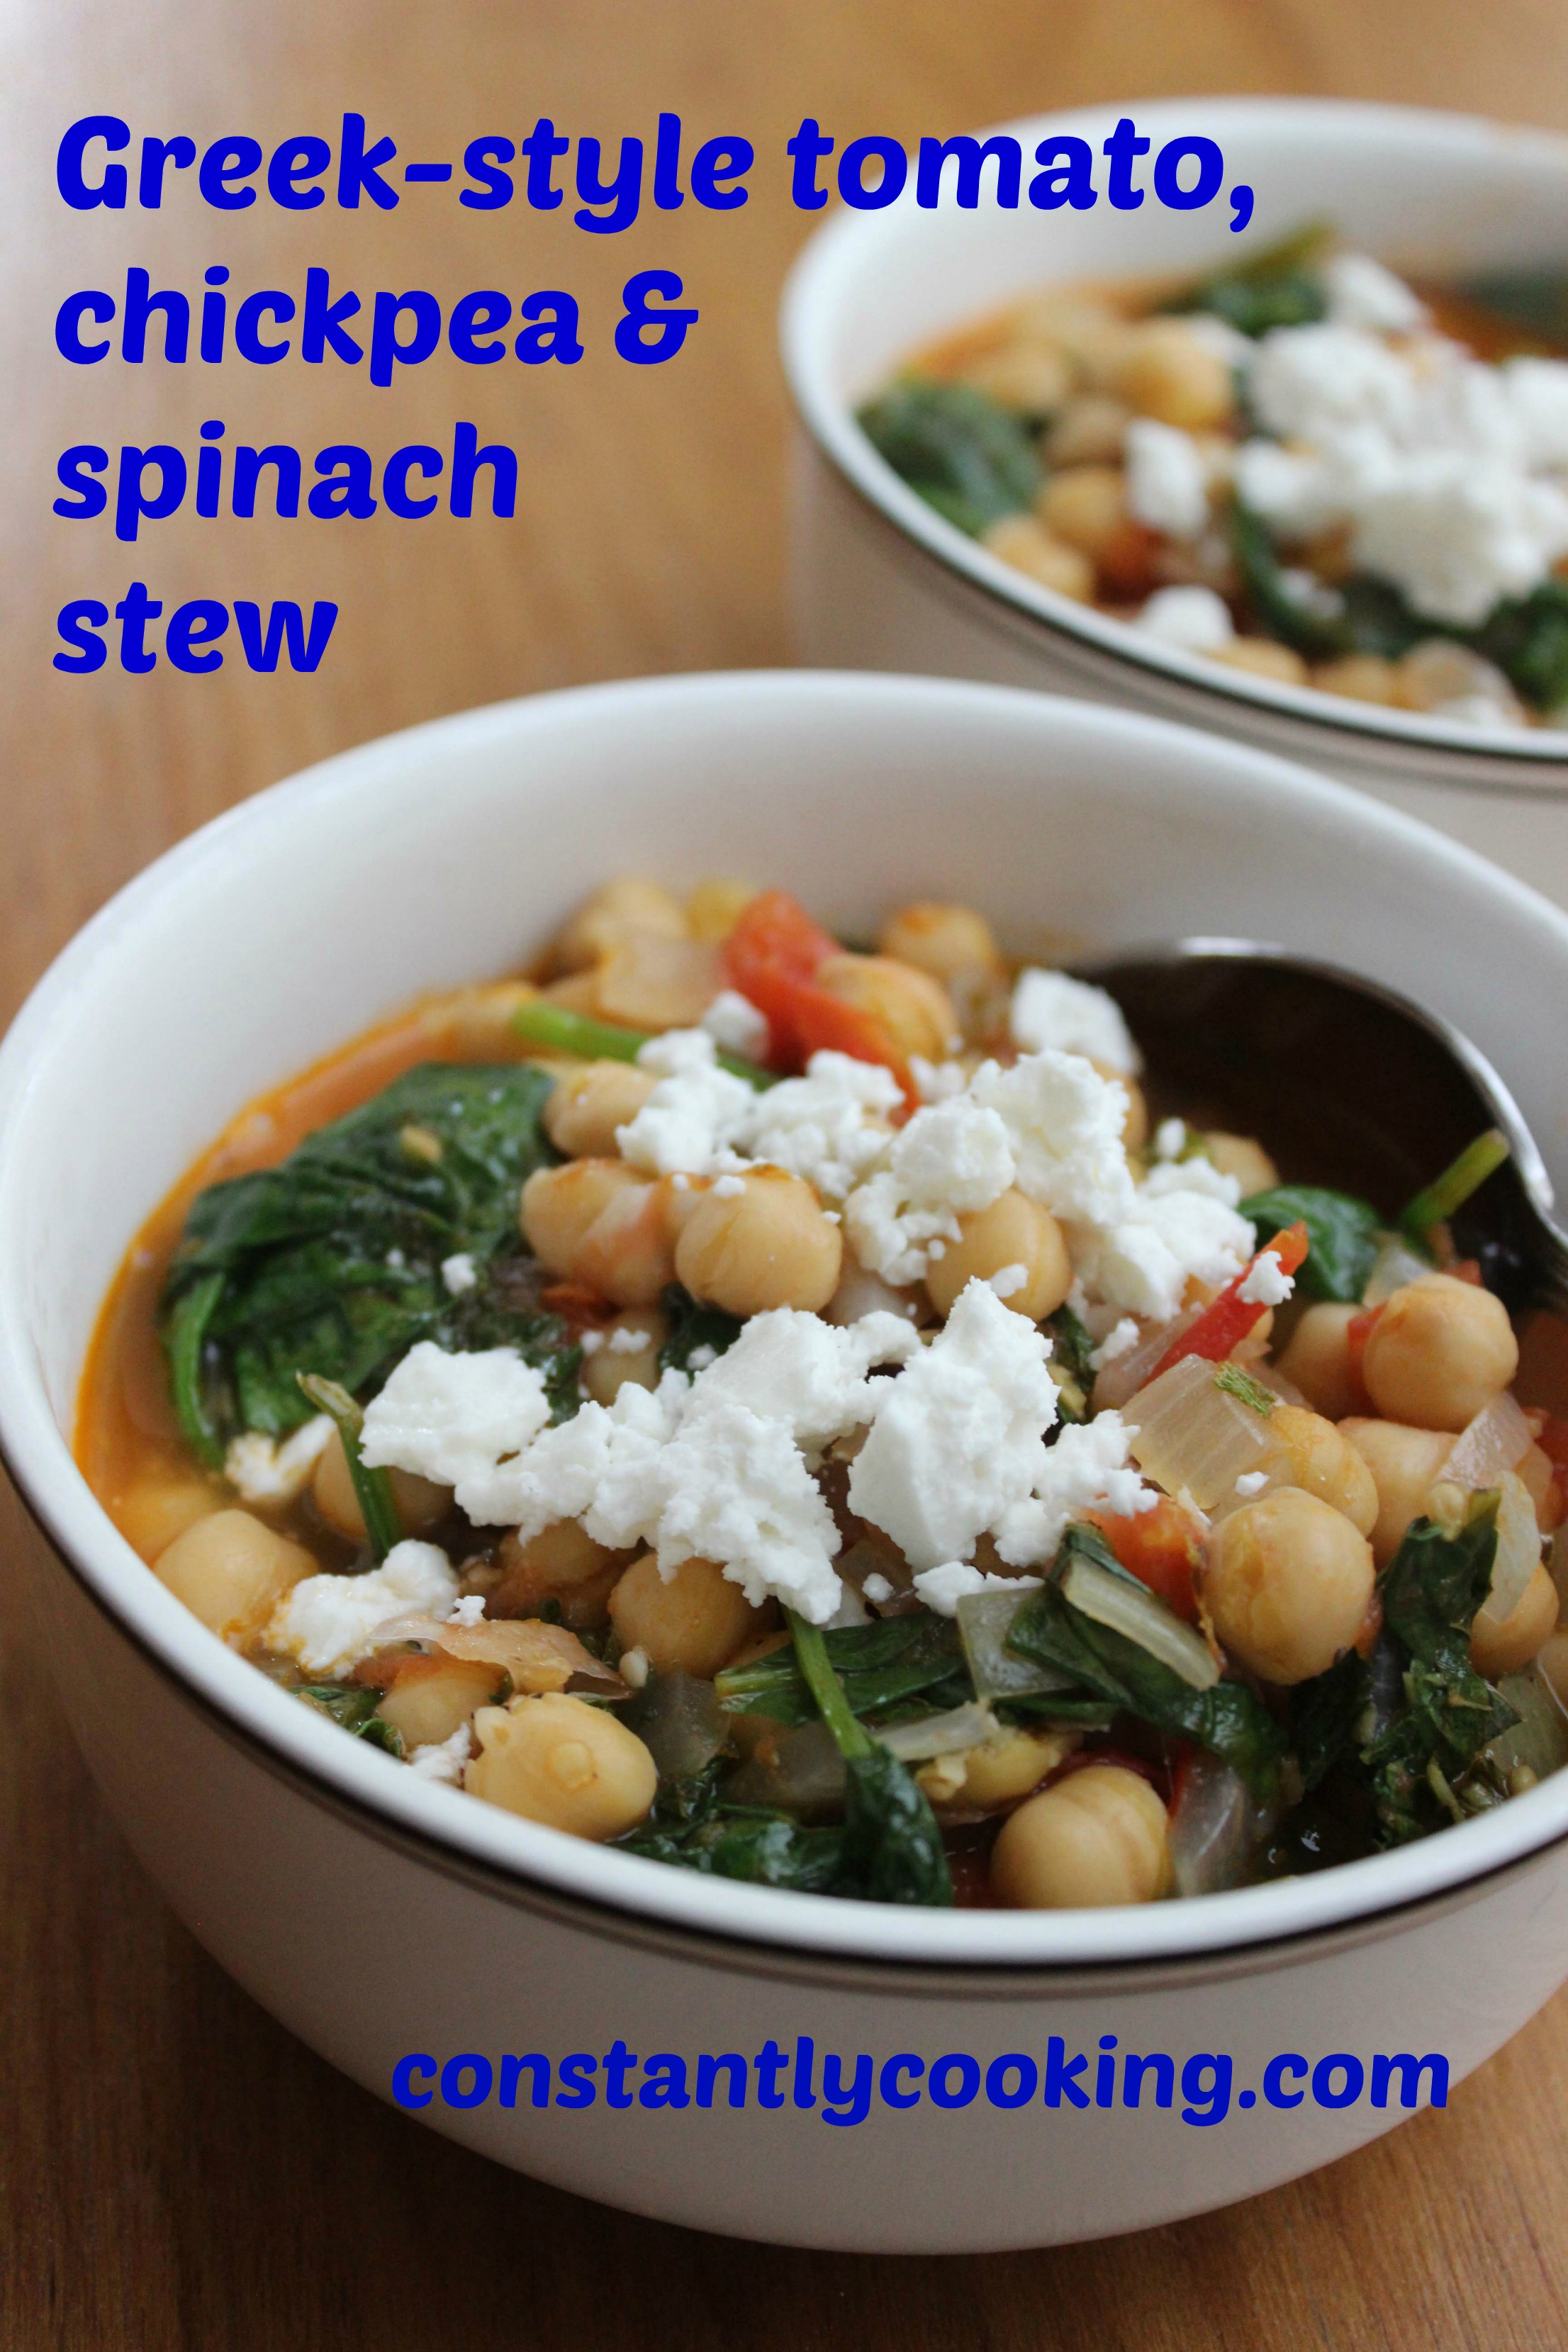 Greek-style tomato, spinach and chickpea stew is hearty and flavourful